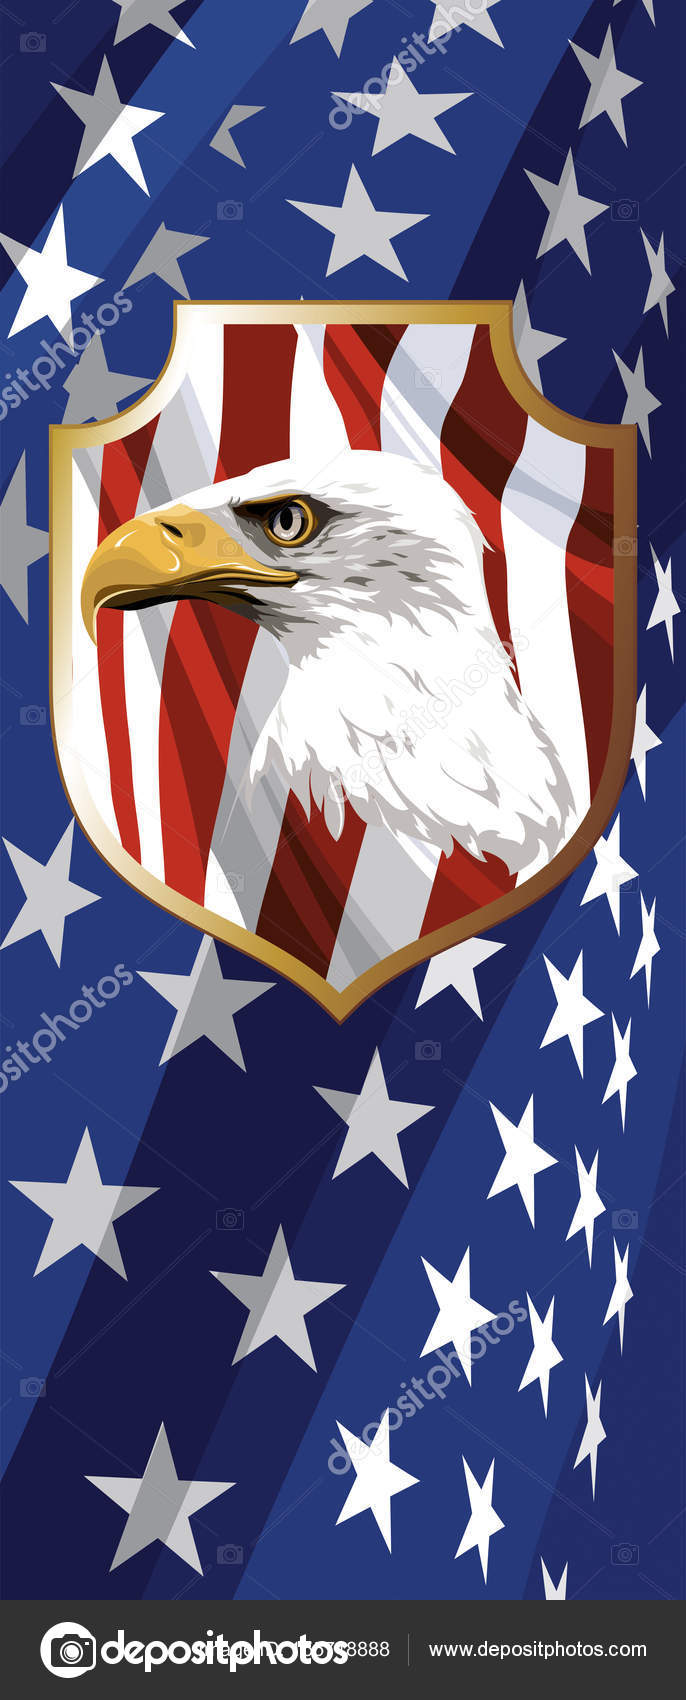 The National Symbol Of The Usa Stock Vector Figura13 155718888